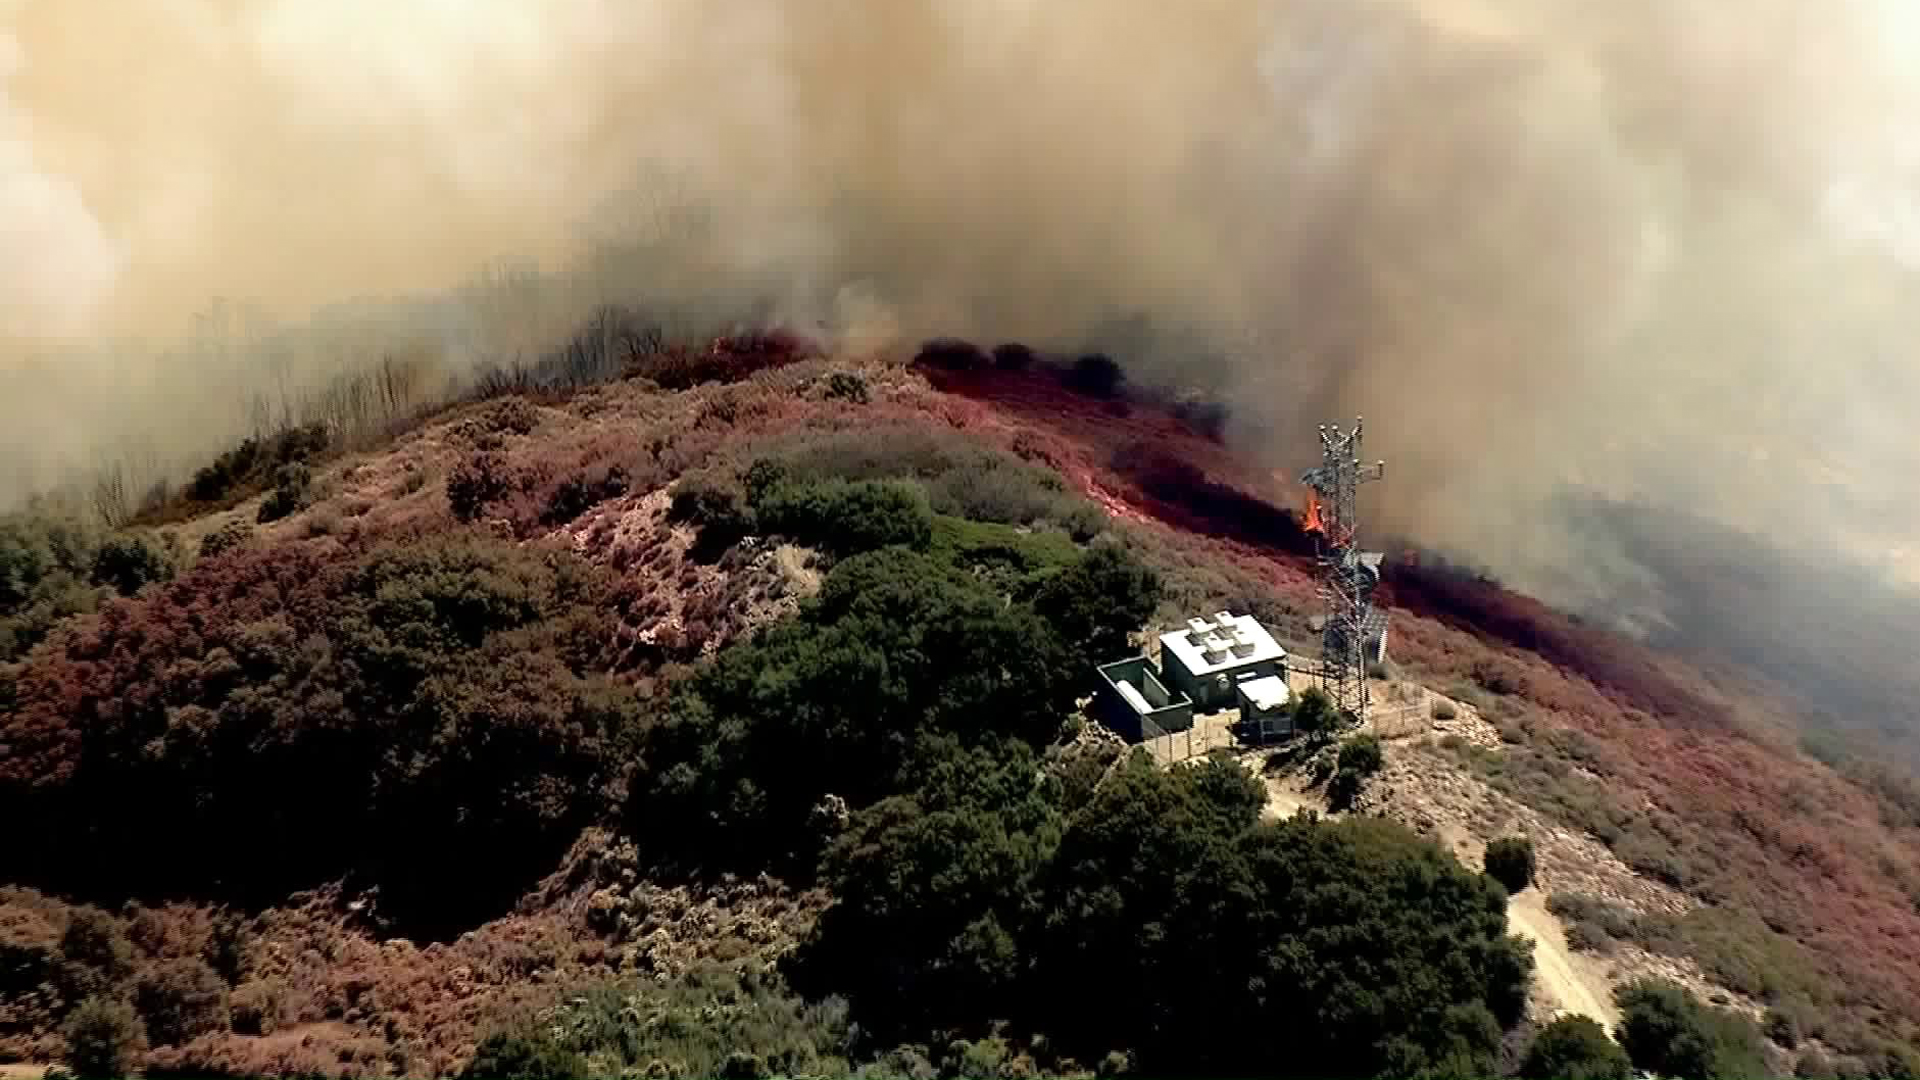 A flare-up from the Holy Fire was burning close to Santiago Peak on Aug. 27, 2018. (Credit: KTLA)